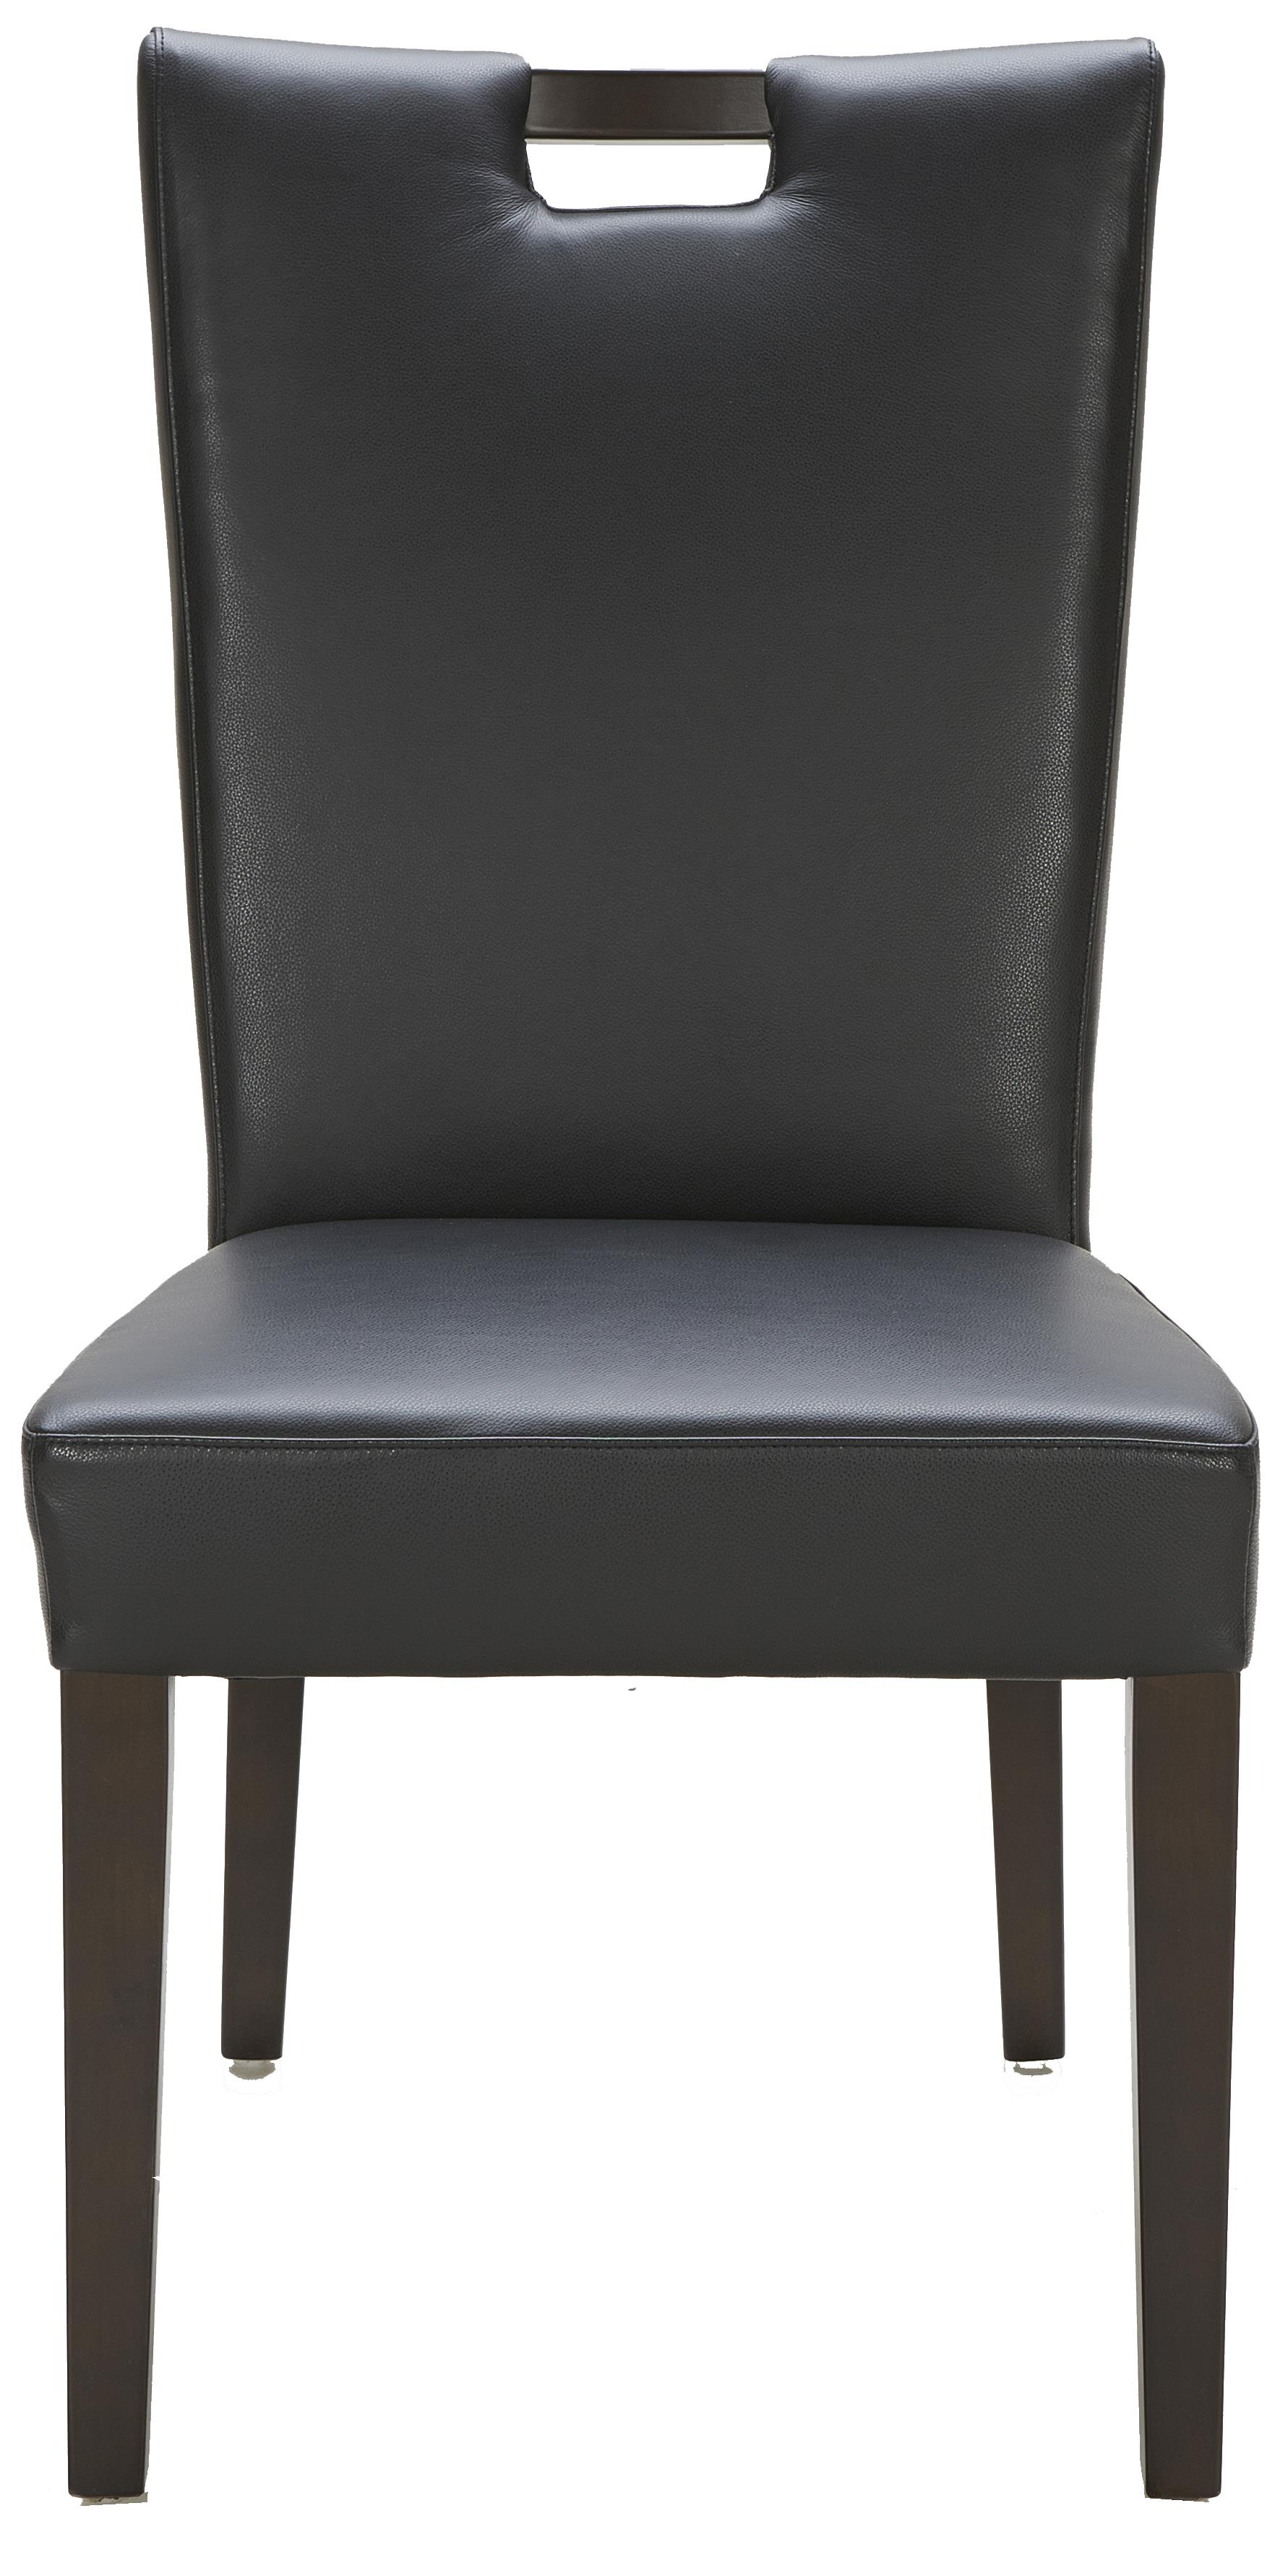 Urban Evolution Urban Dining Chairs Brighton Black Leather Chair - Item Number: Y-787-M5509